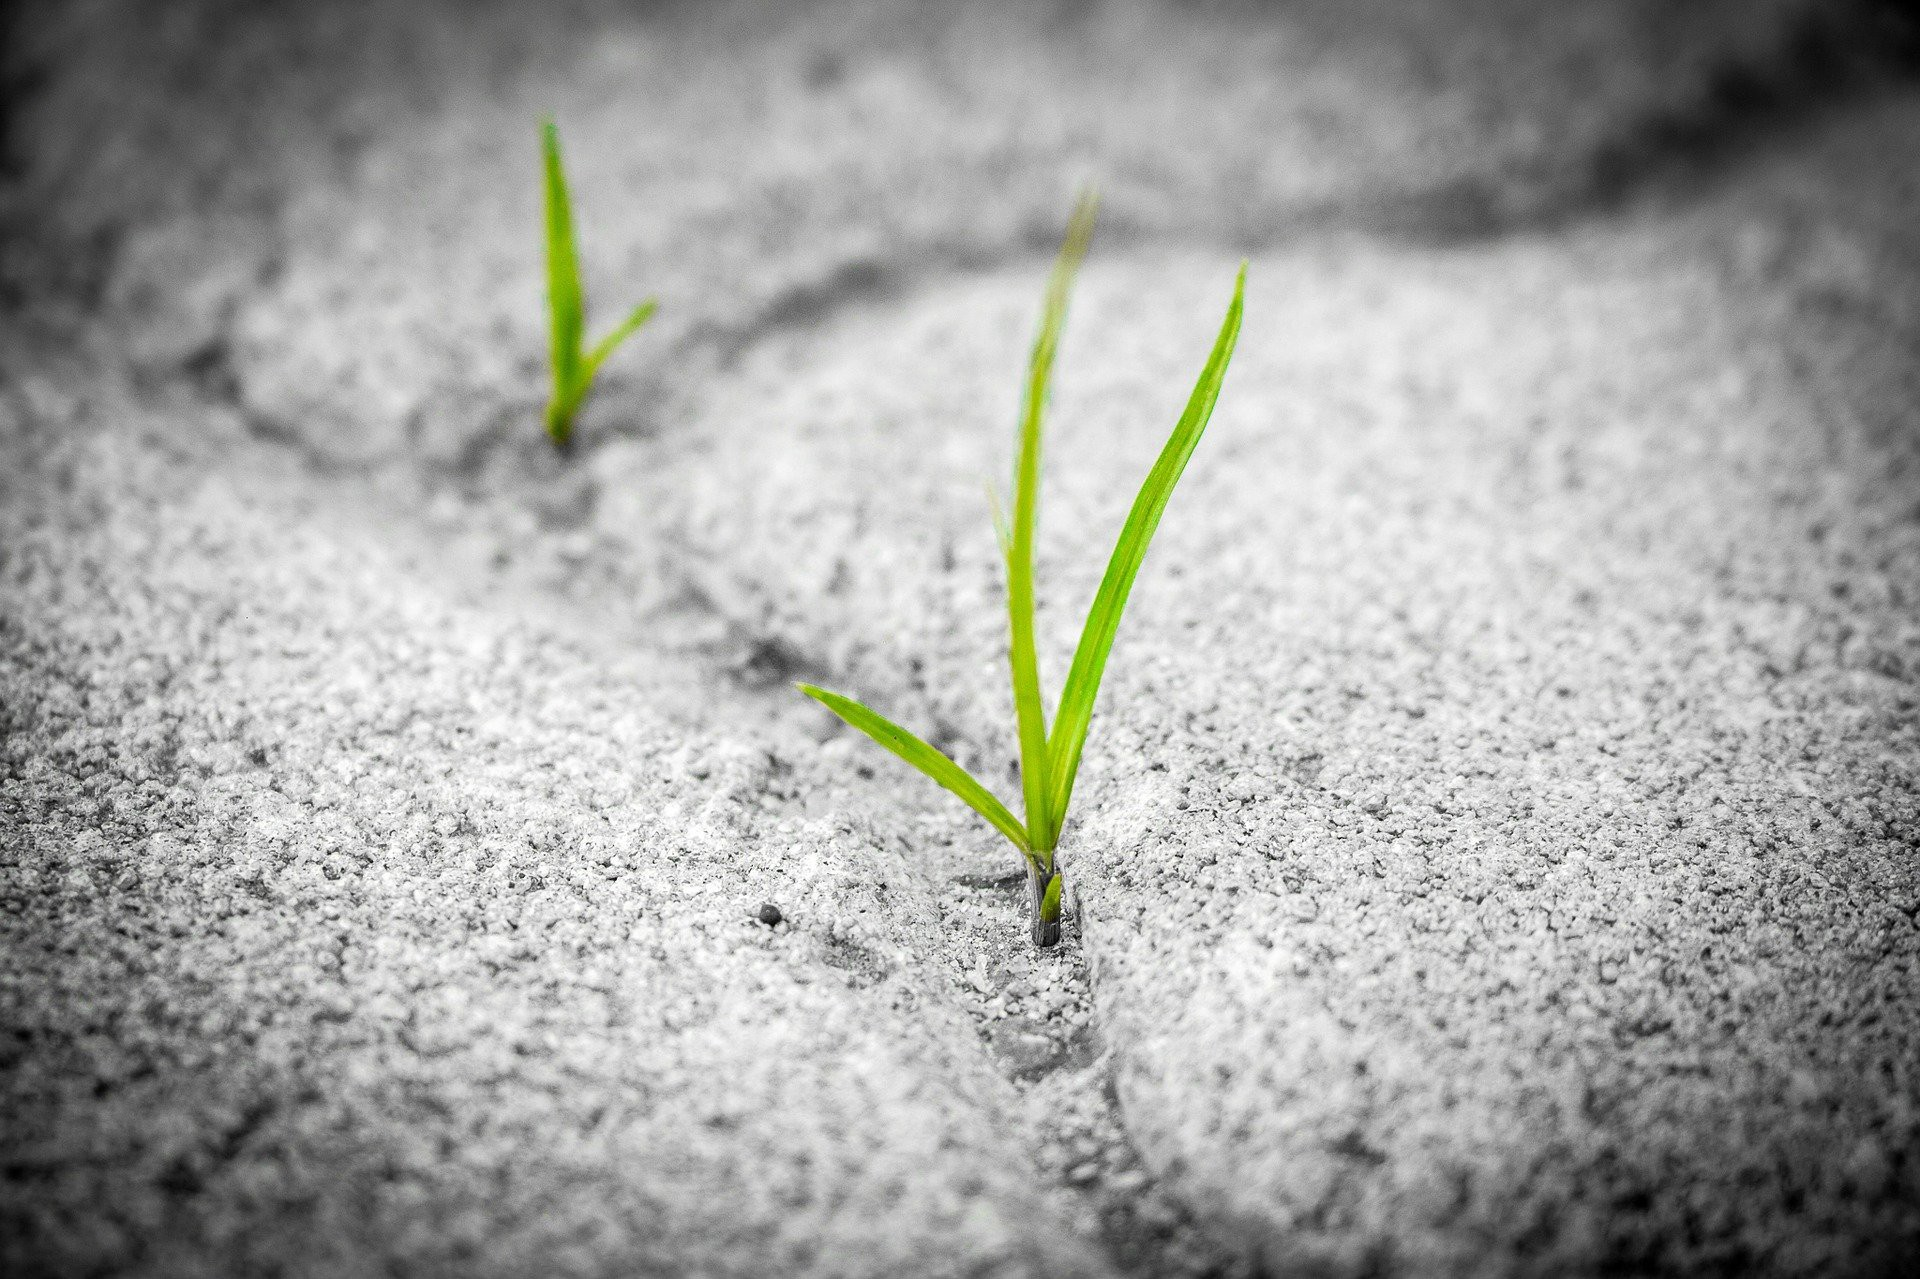 A small, green plant growing up through cracks in a concrete sidewalk.